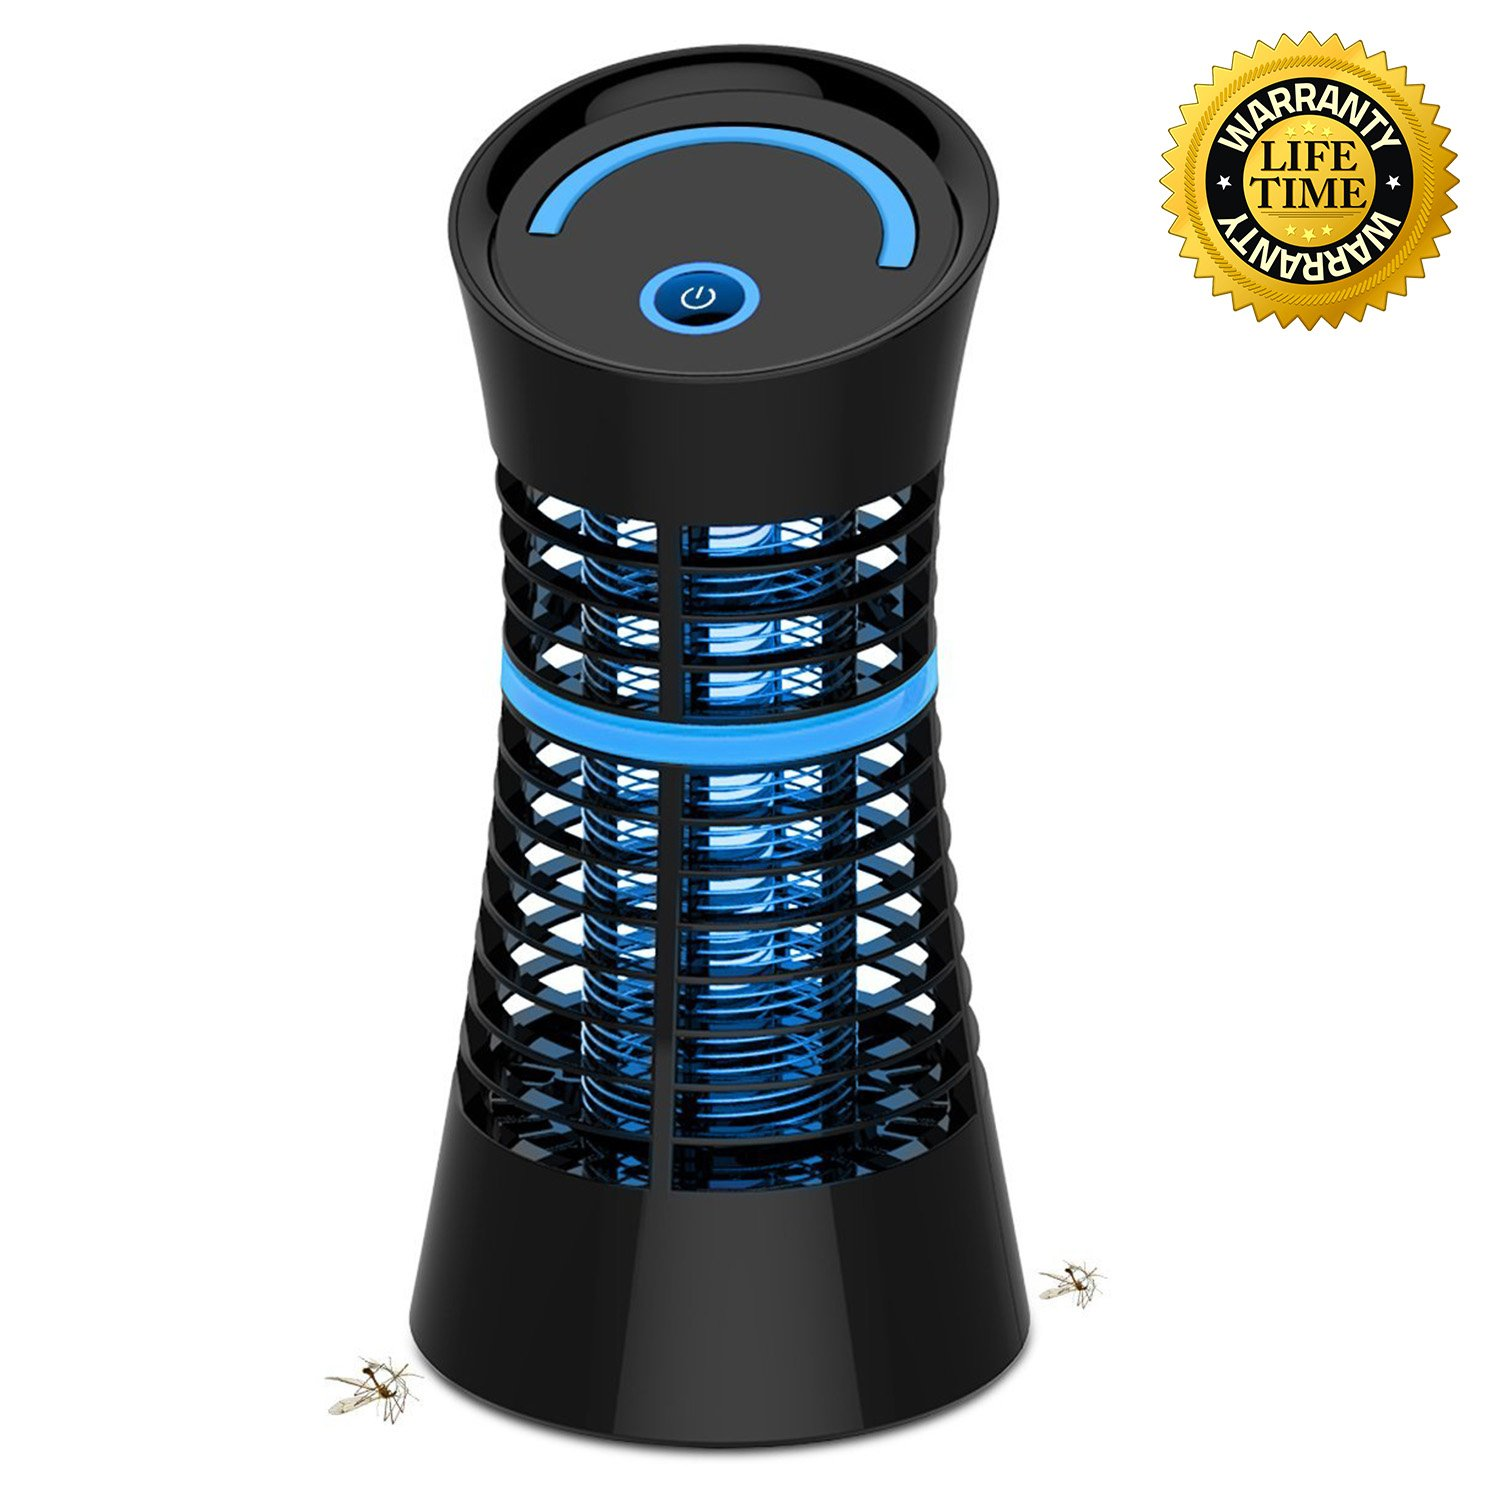 Indoor Bug Zapper, Electronic Indoor Mosquito Trap Mosquito Killer with Non Toxic UV Light Indoor Mosquito Zapper for Flying Pests, Insect, Gnat